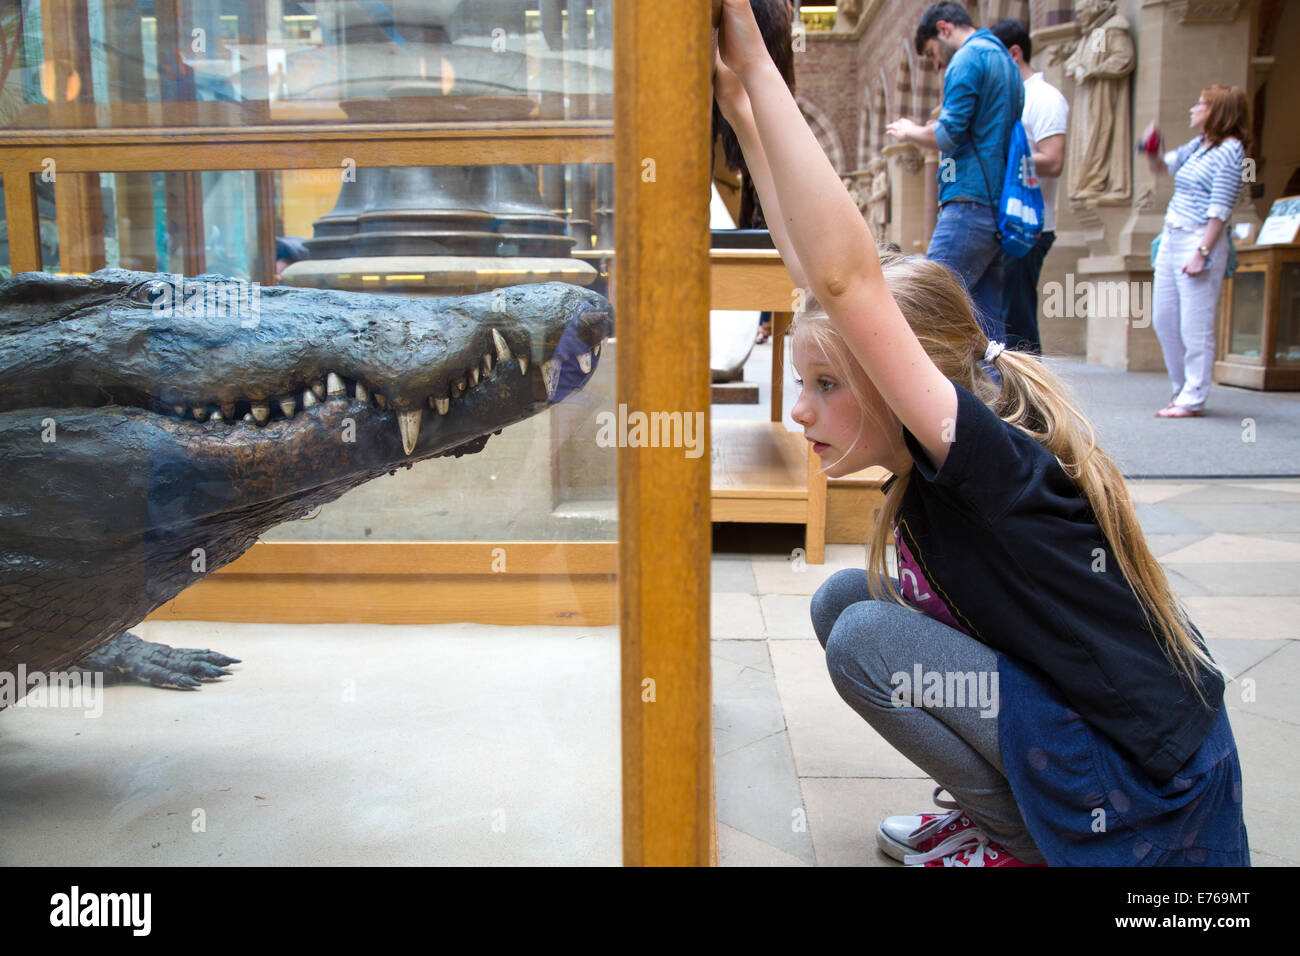 Young Girl looking at an African Crocodile in a Display Case, Oxford Museum of Natural History - Stock Image